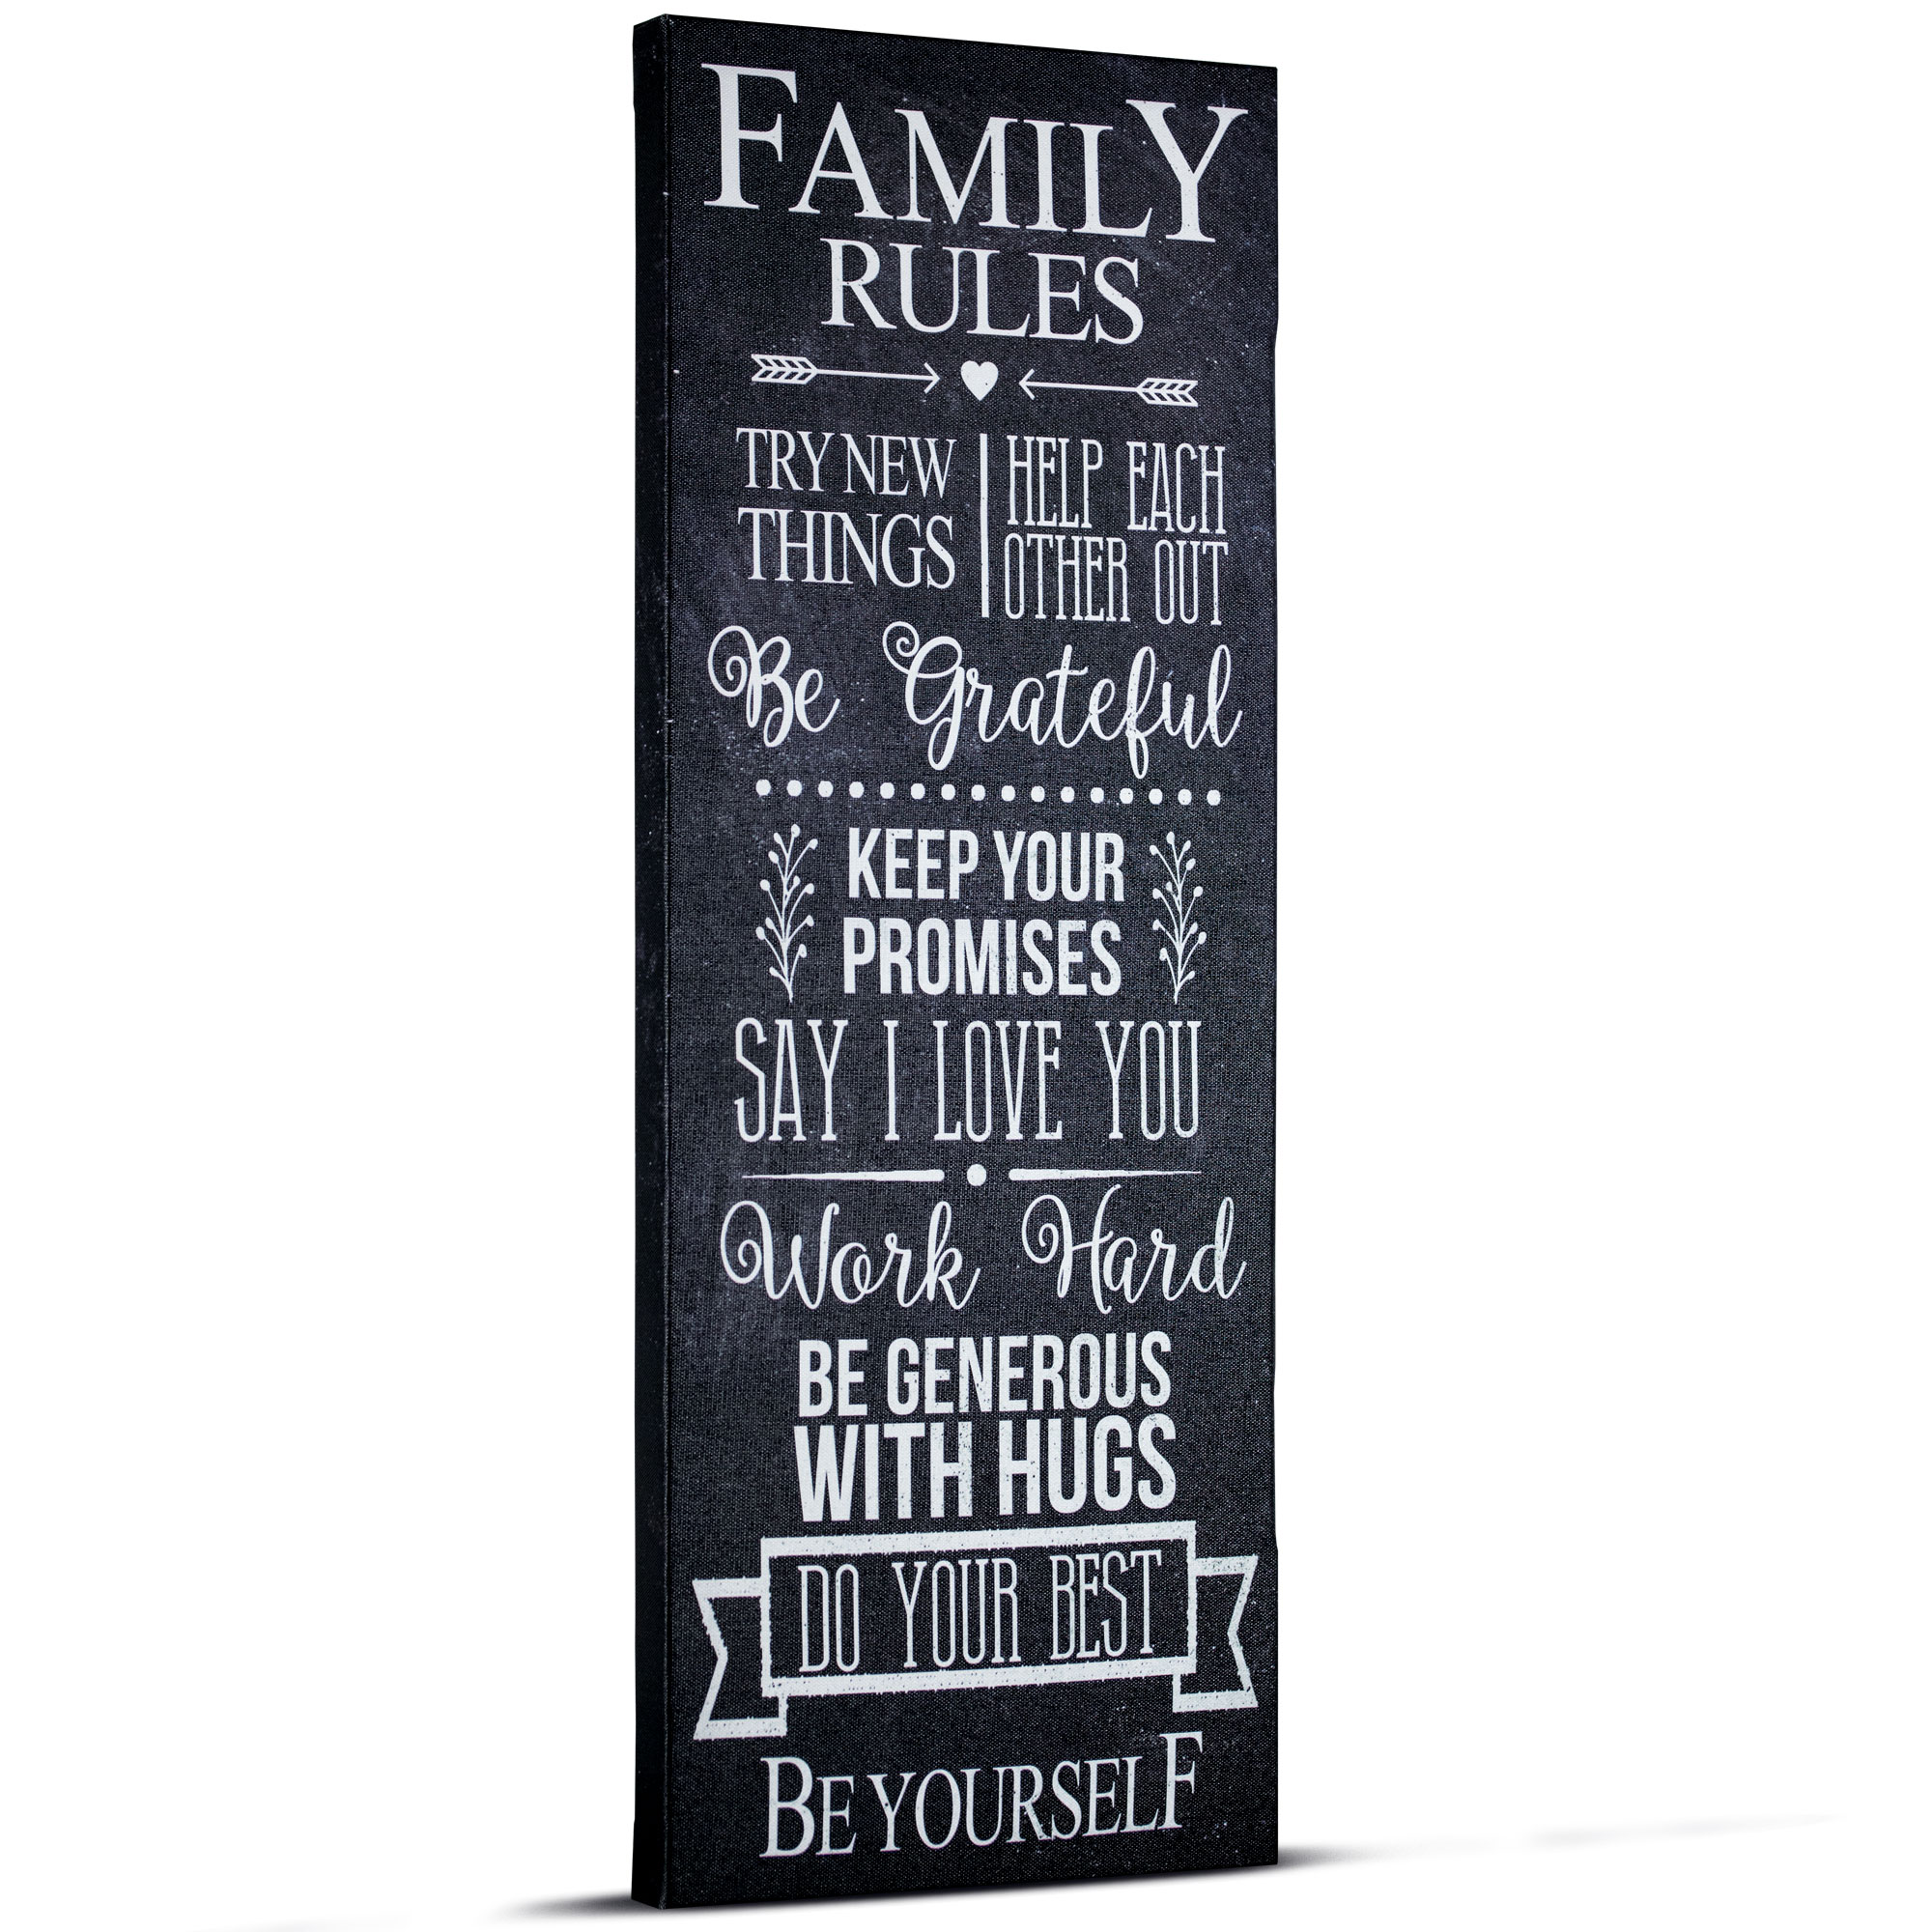 Crystal Art Family Rules Inspirational Text Wrapped Canvas Wall Art